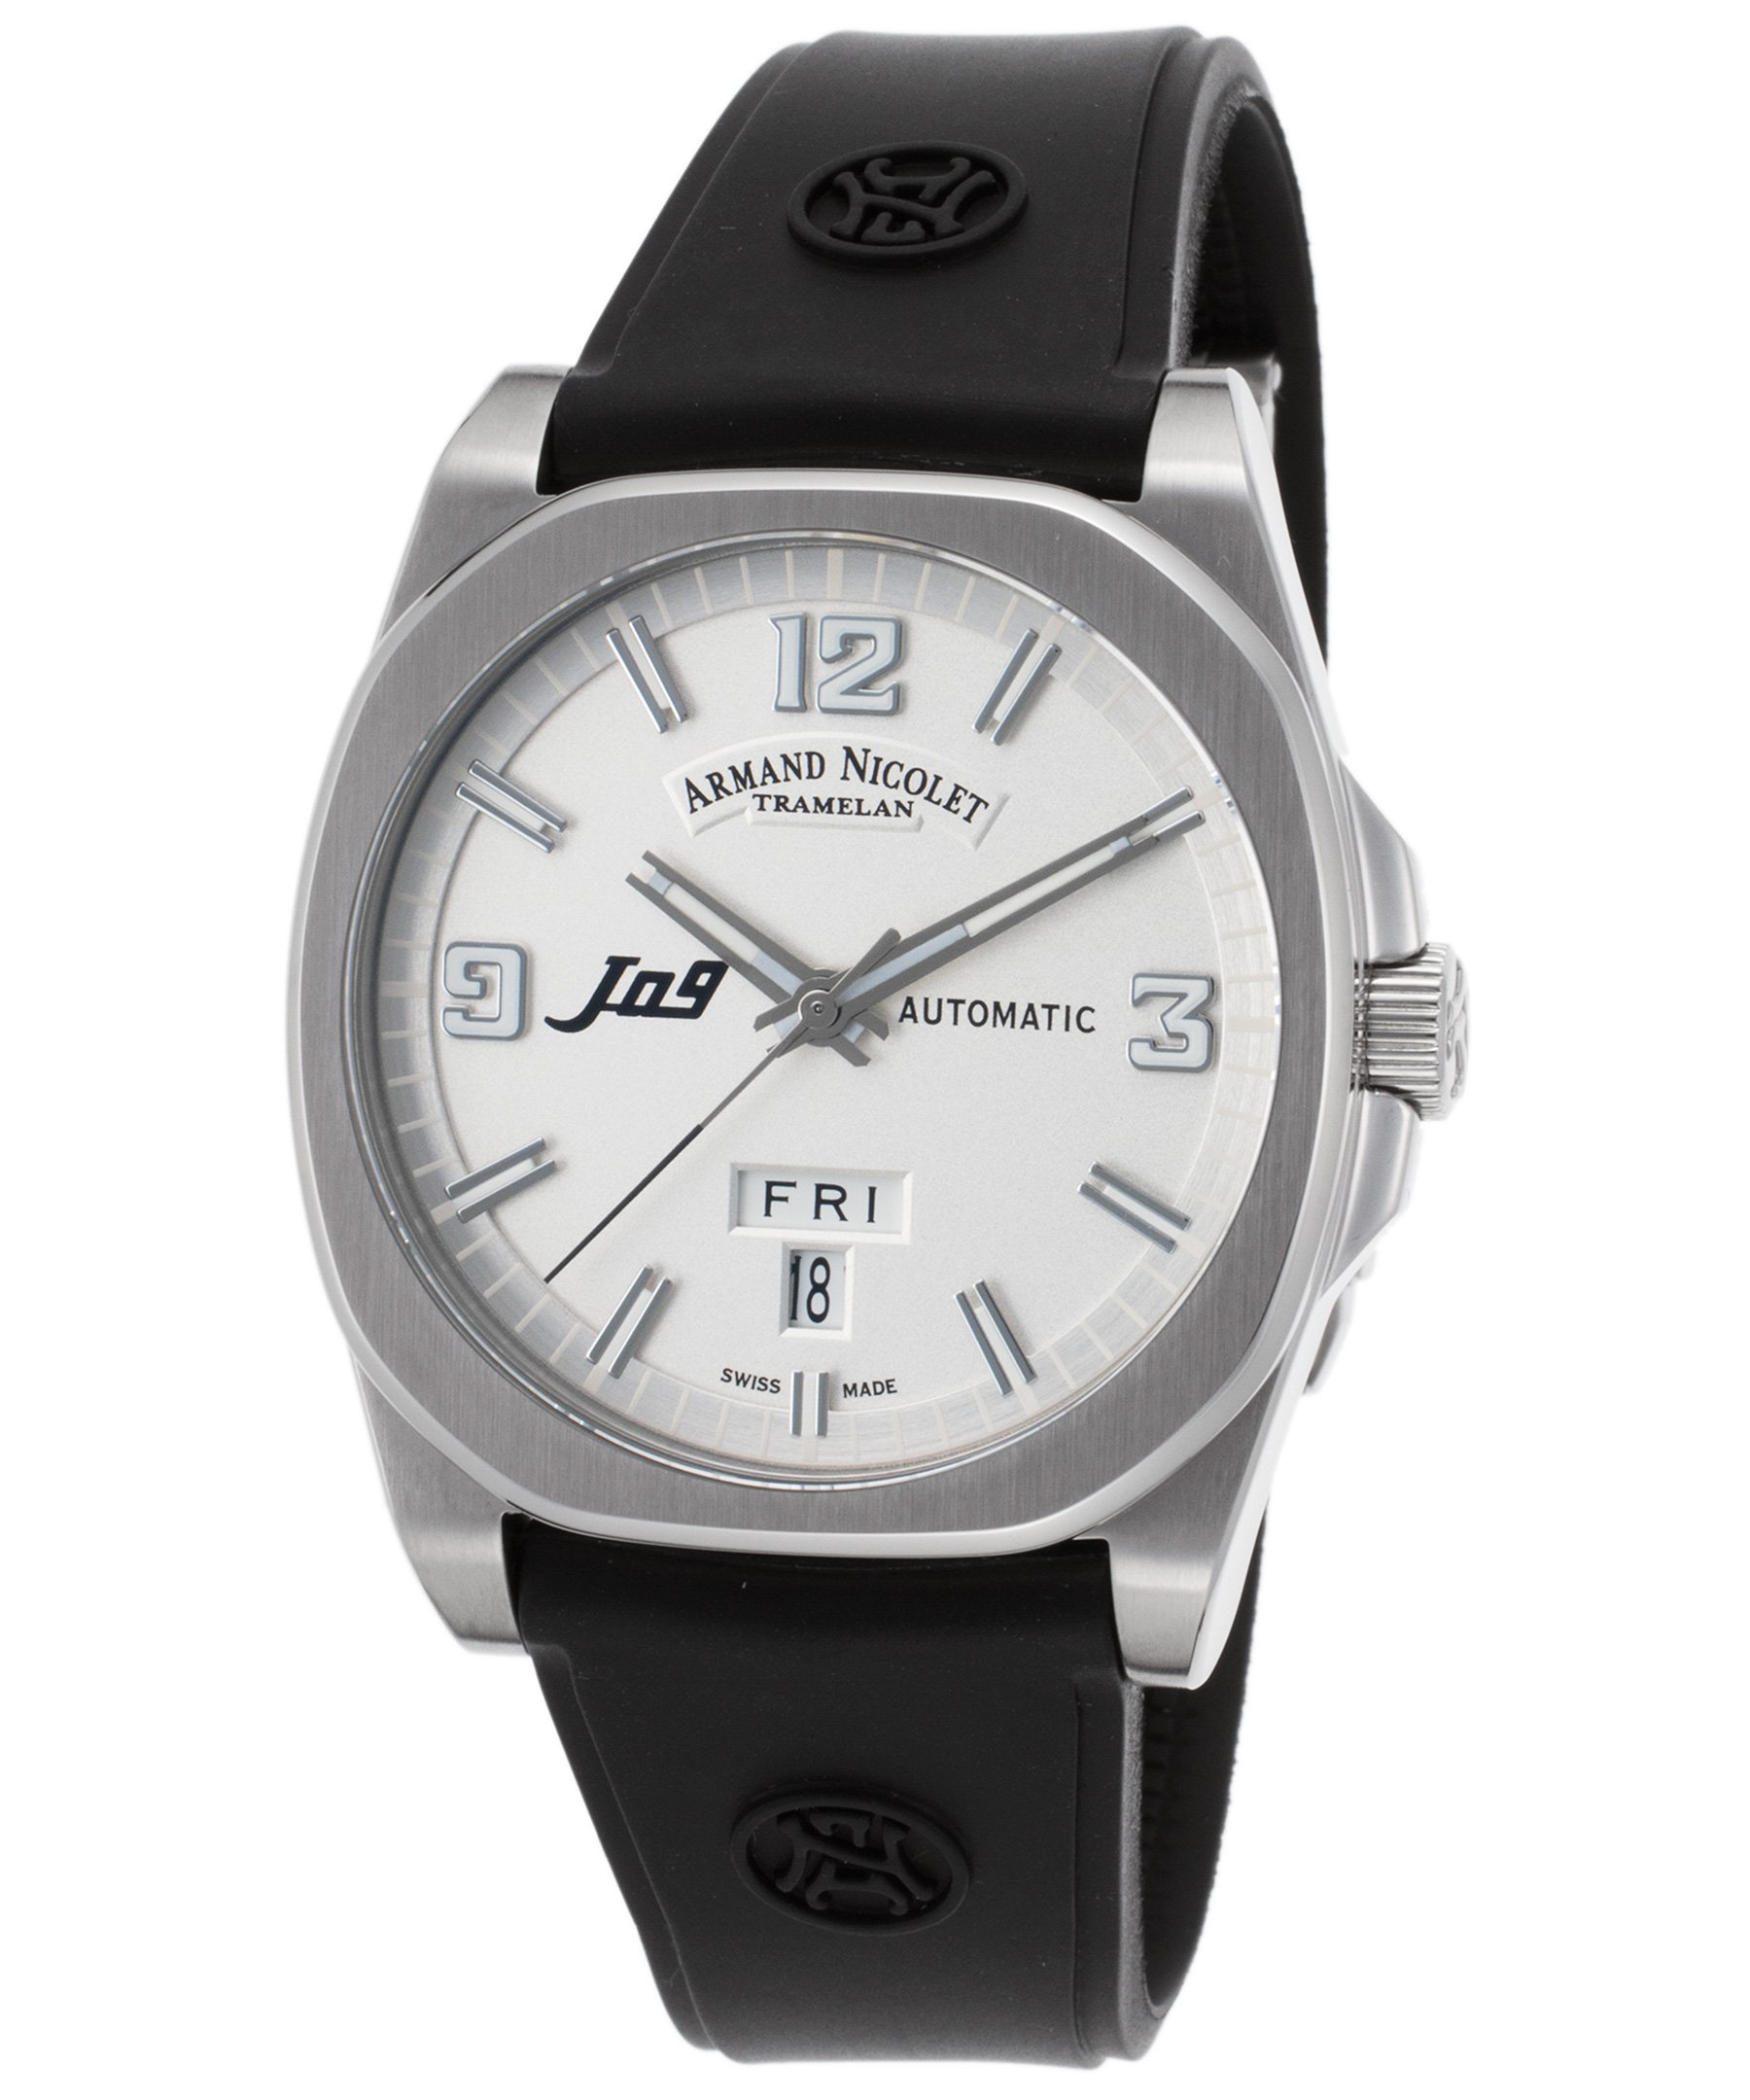 Armand-Nicolet-J09-DayDate-Automatic-9650A-AG-G9660